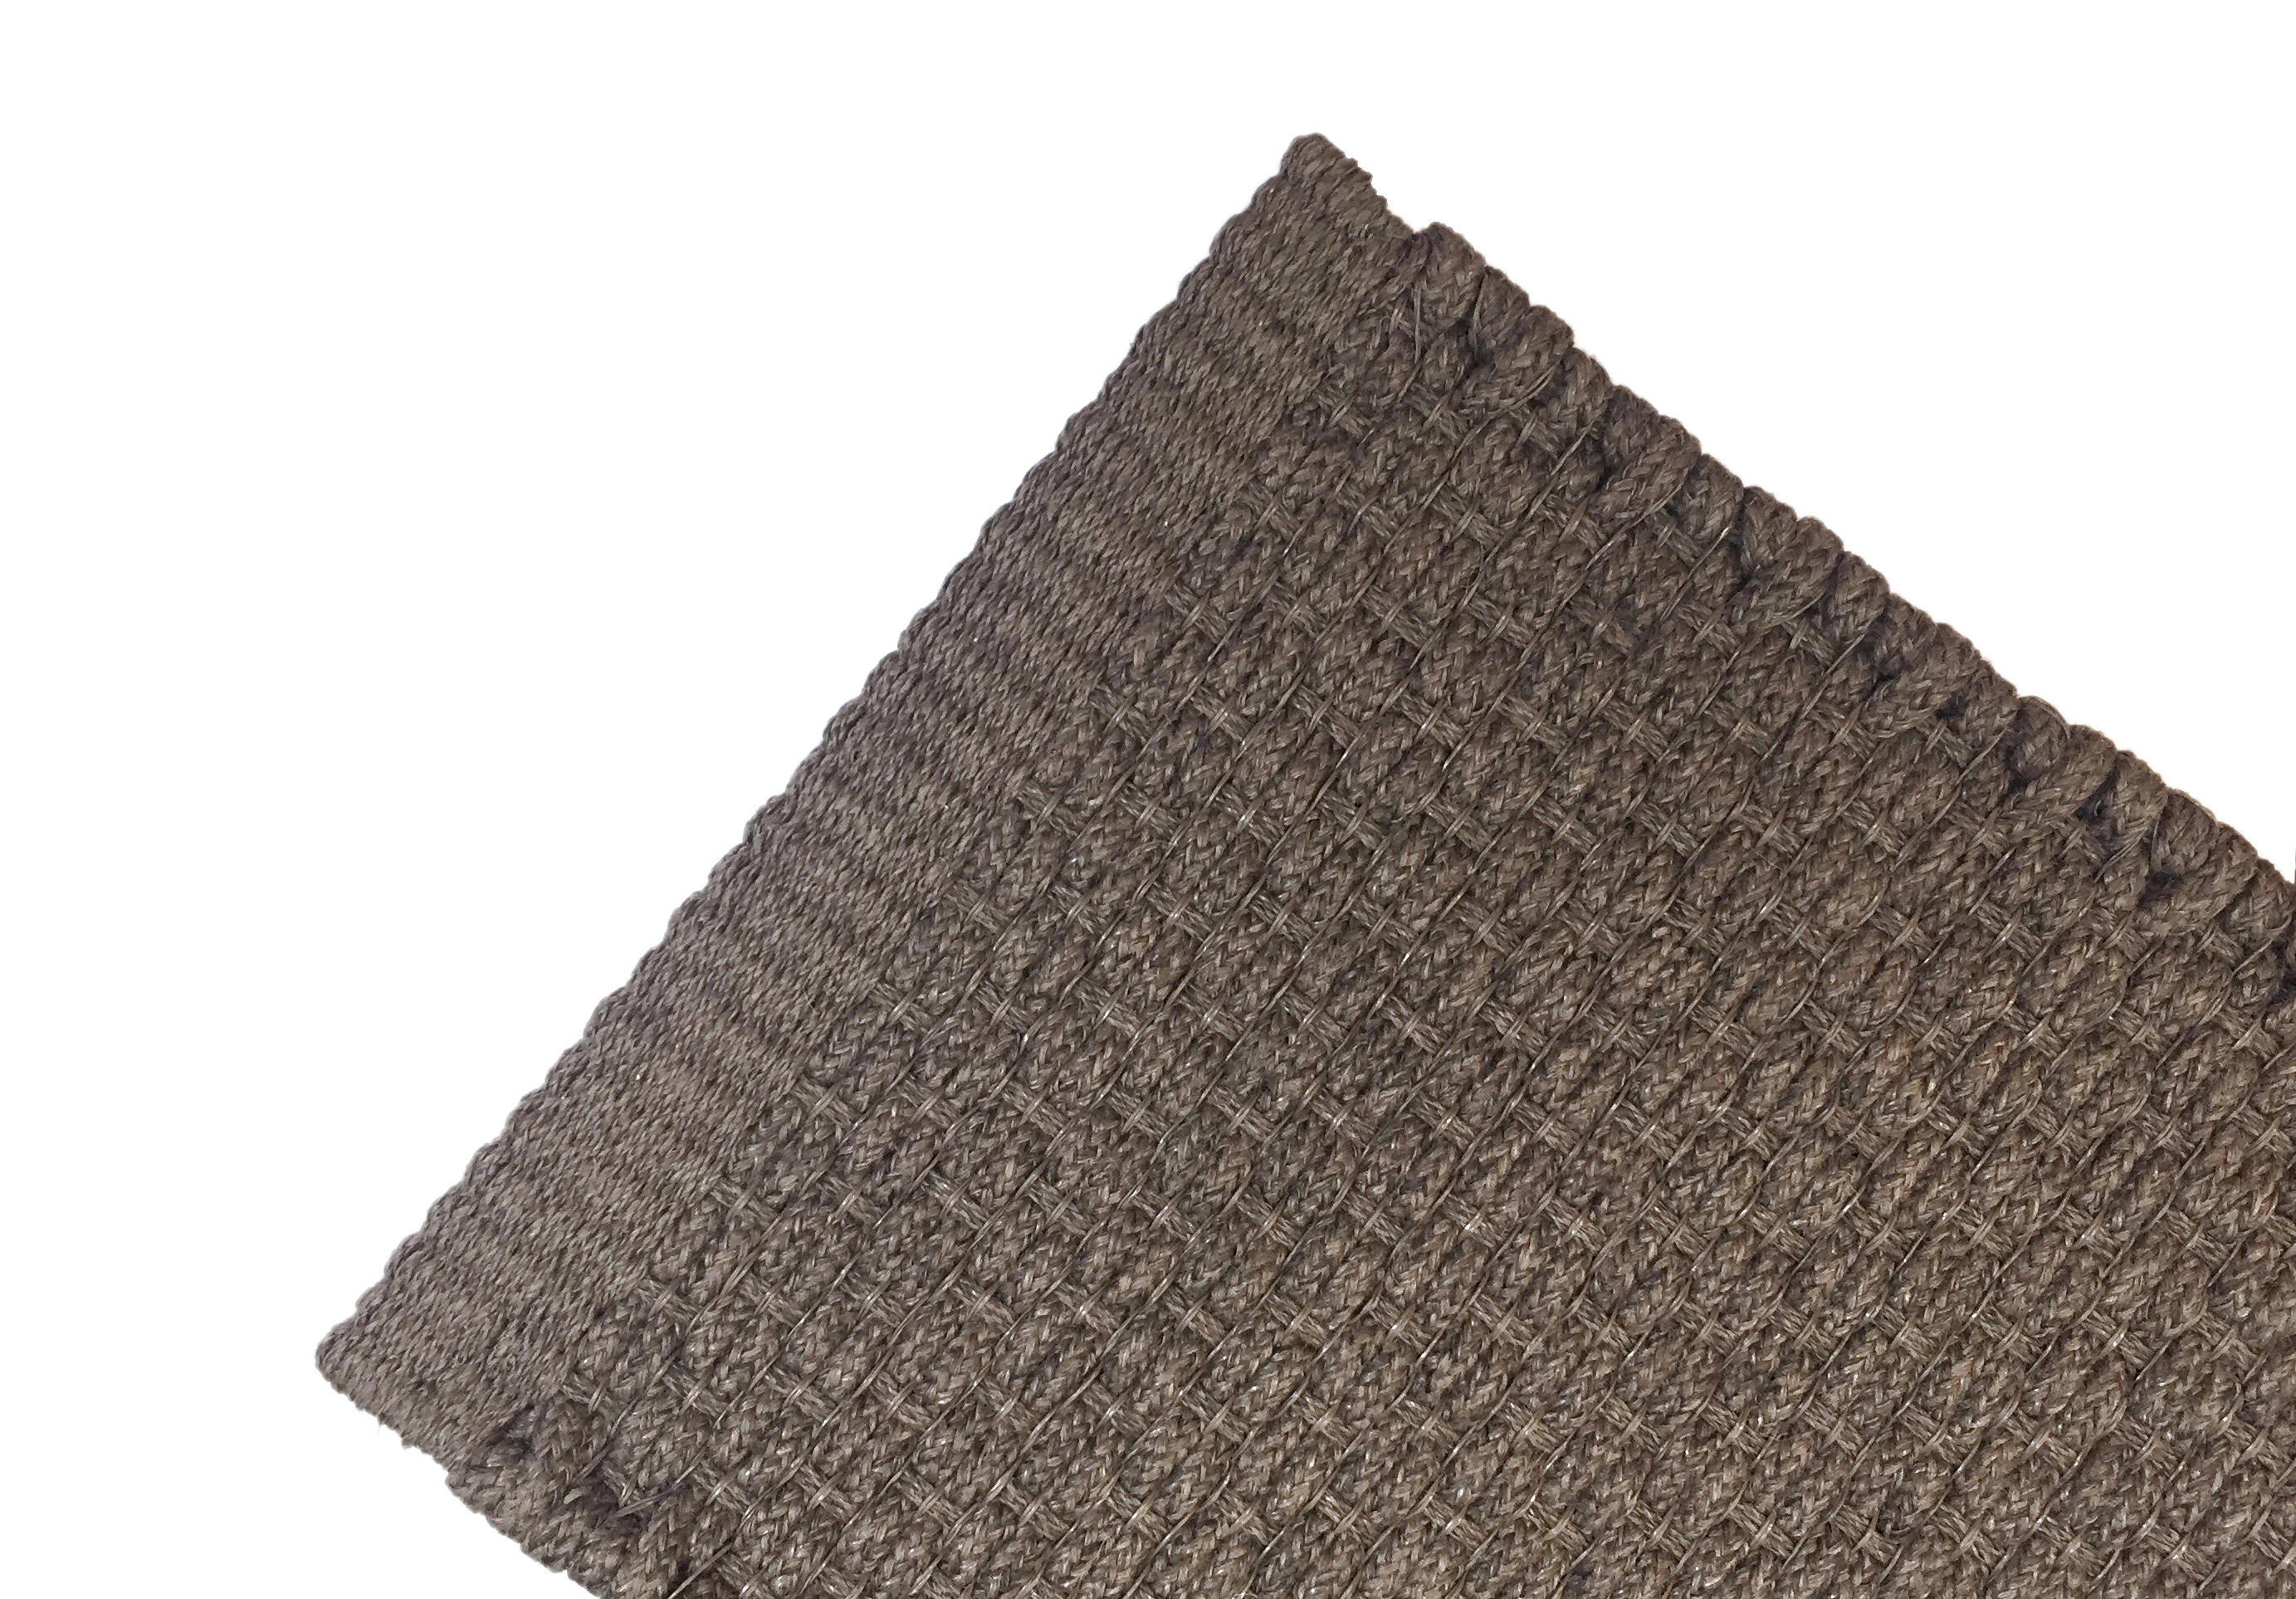 Rug Outdoor Rugs From Royal Botania Architonic